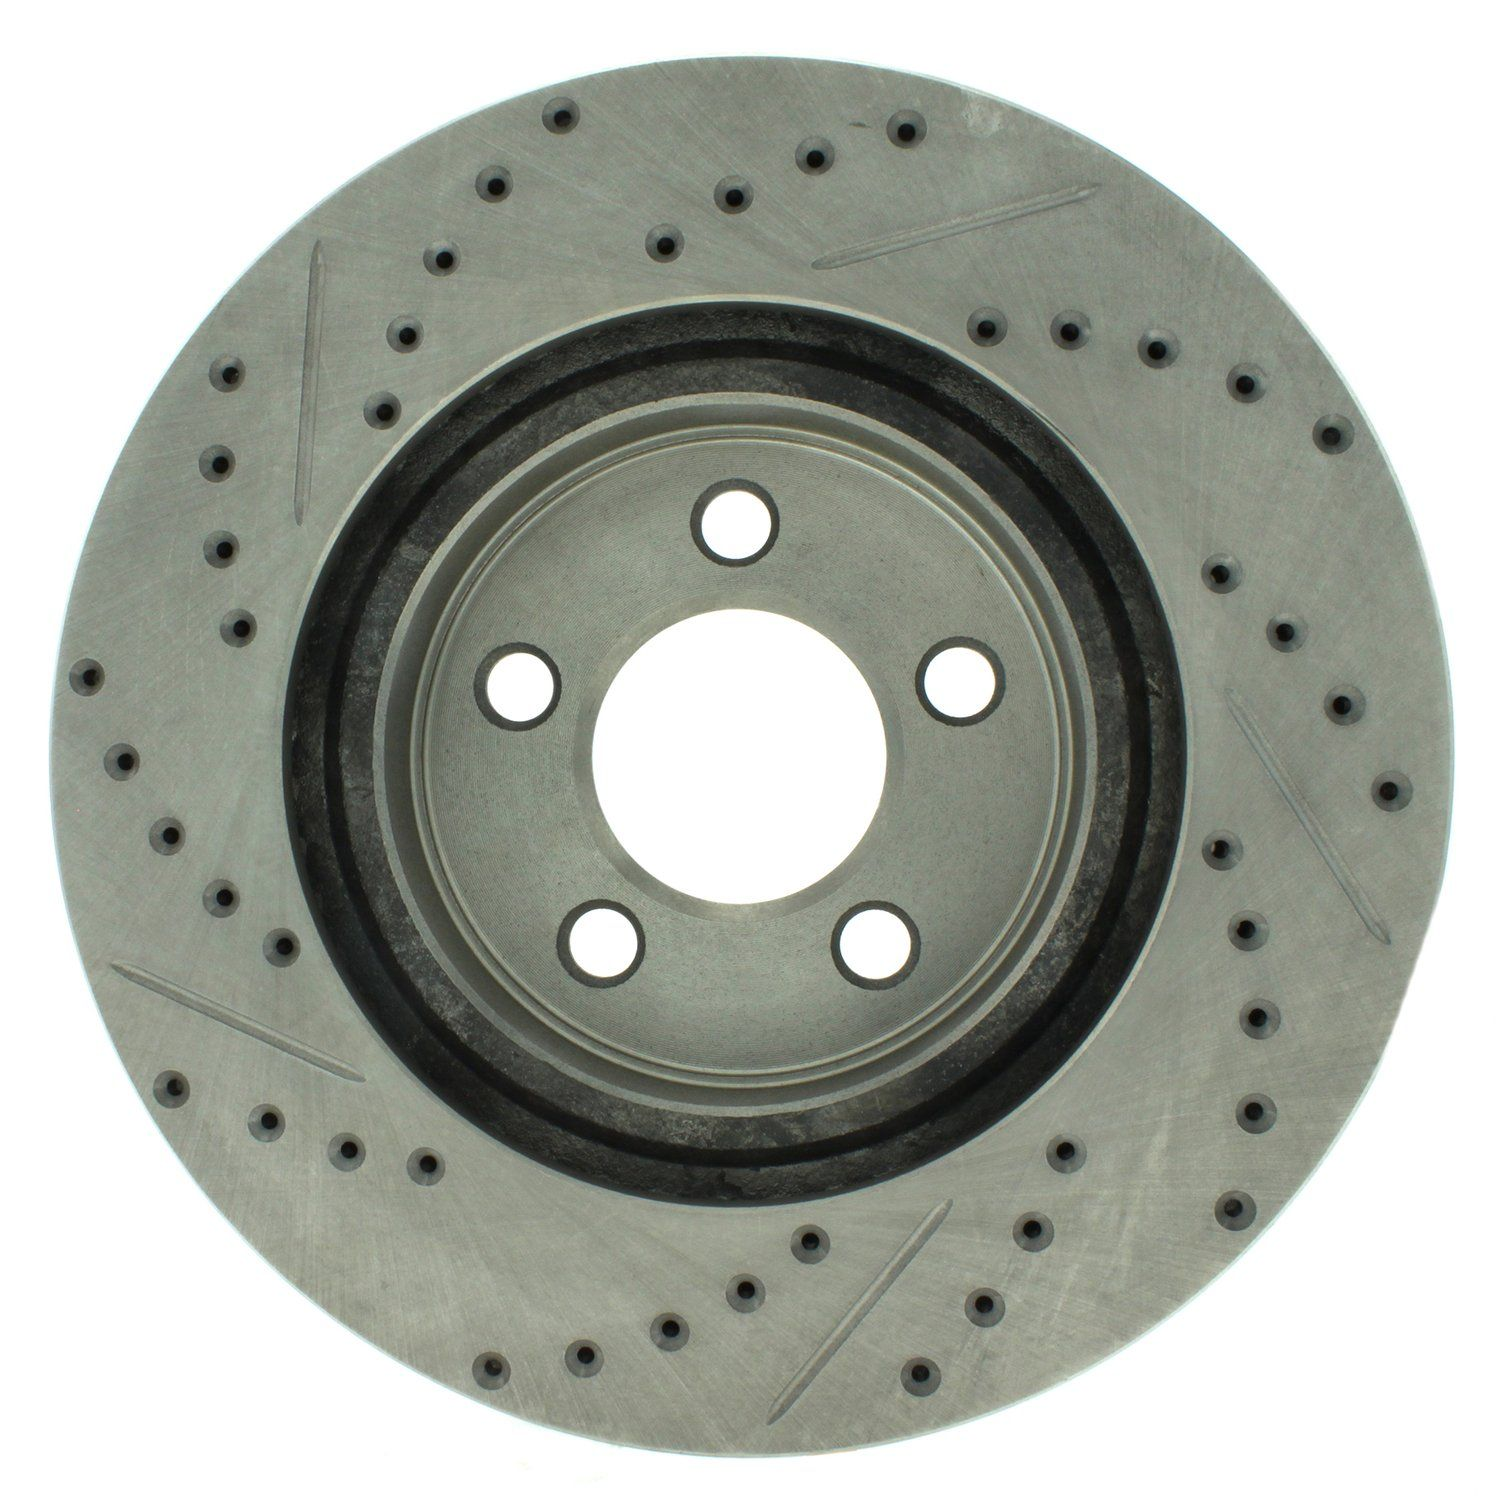 2009 Dodge Challenger Disc Brake Rotor Front Left 6 Cyl 3 5l Centric 227 63059l Solid Rear